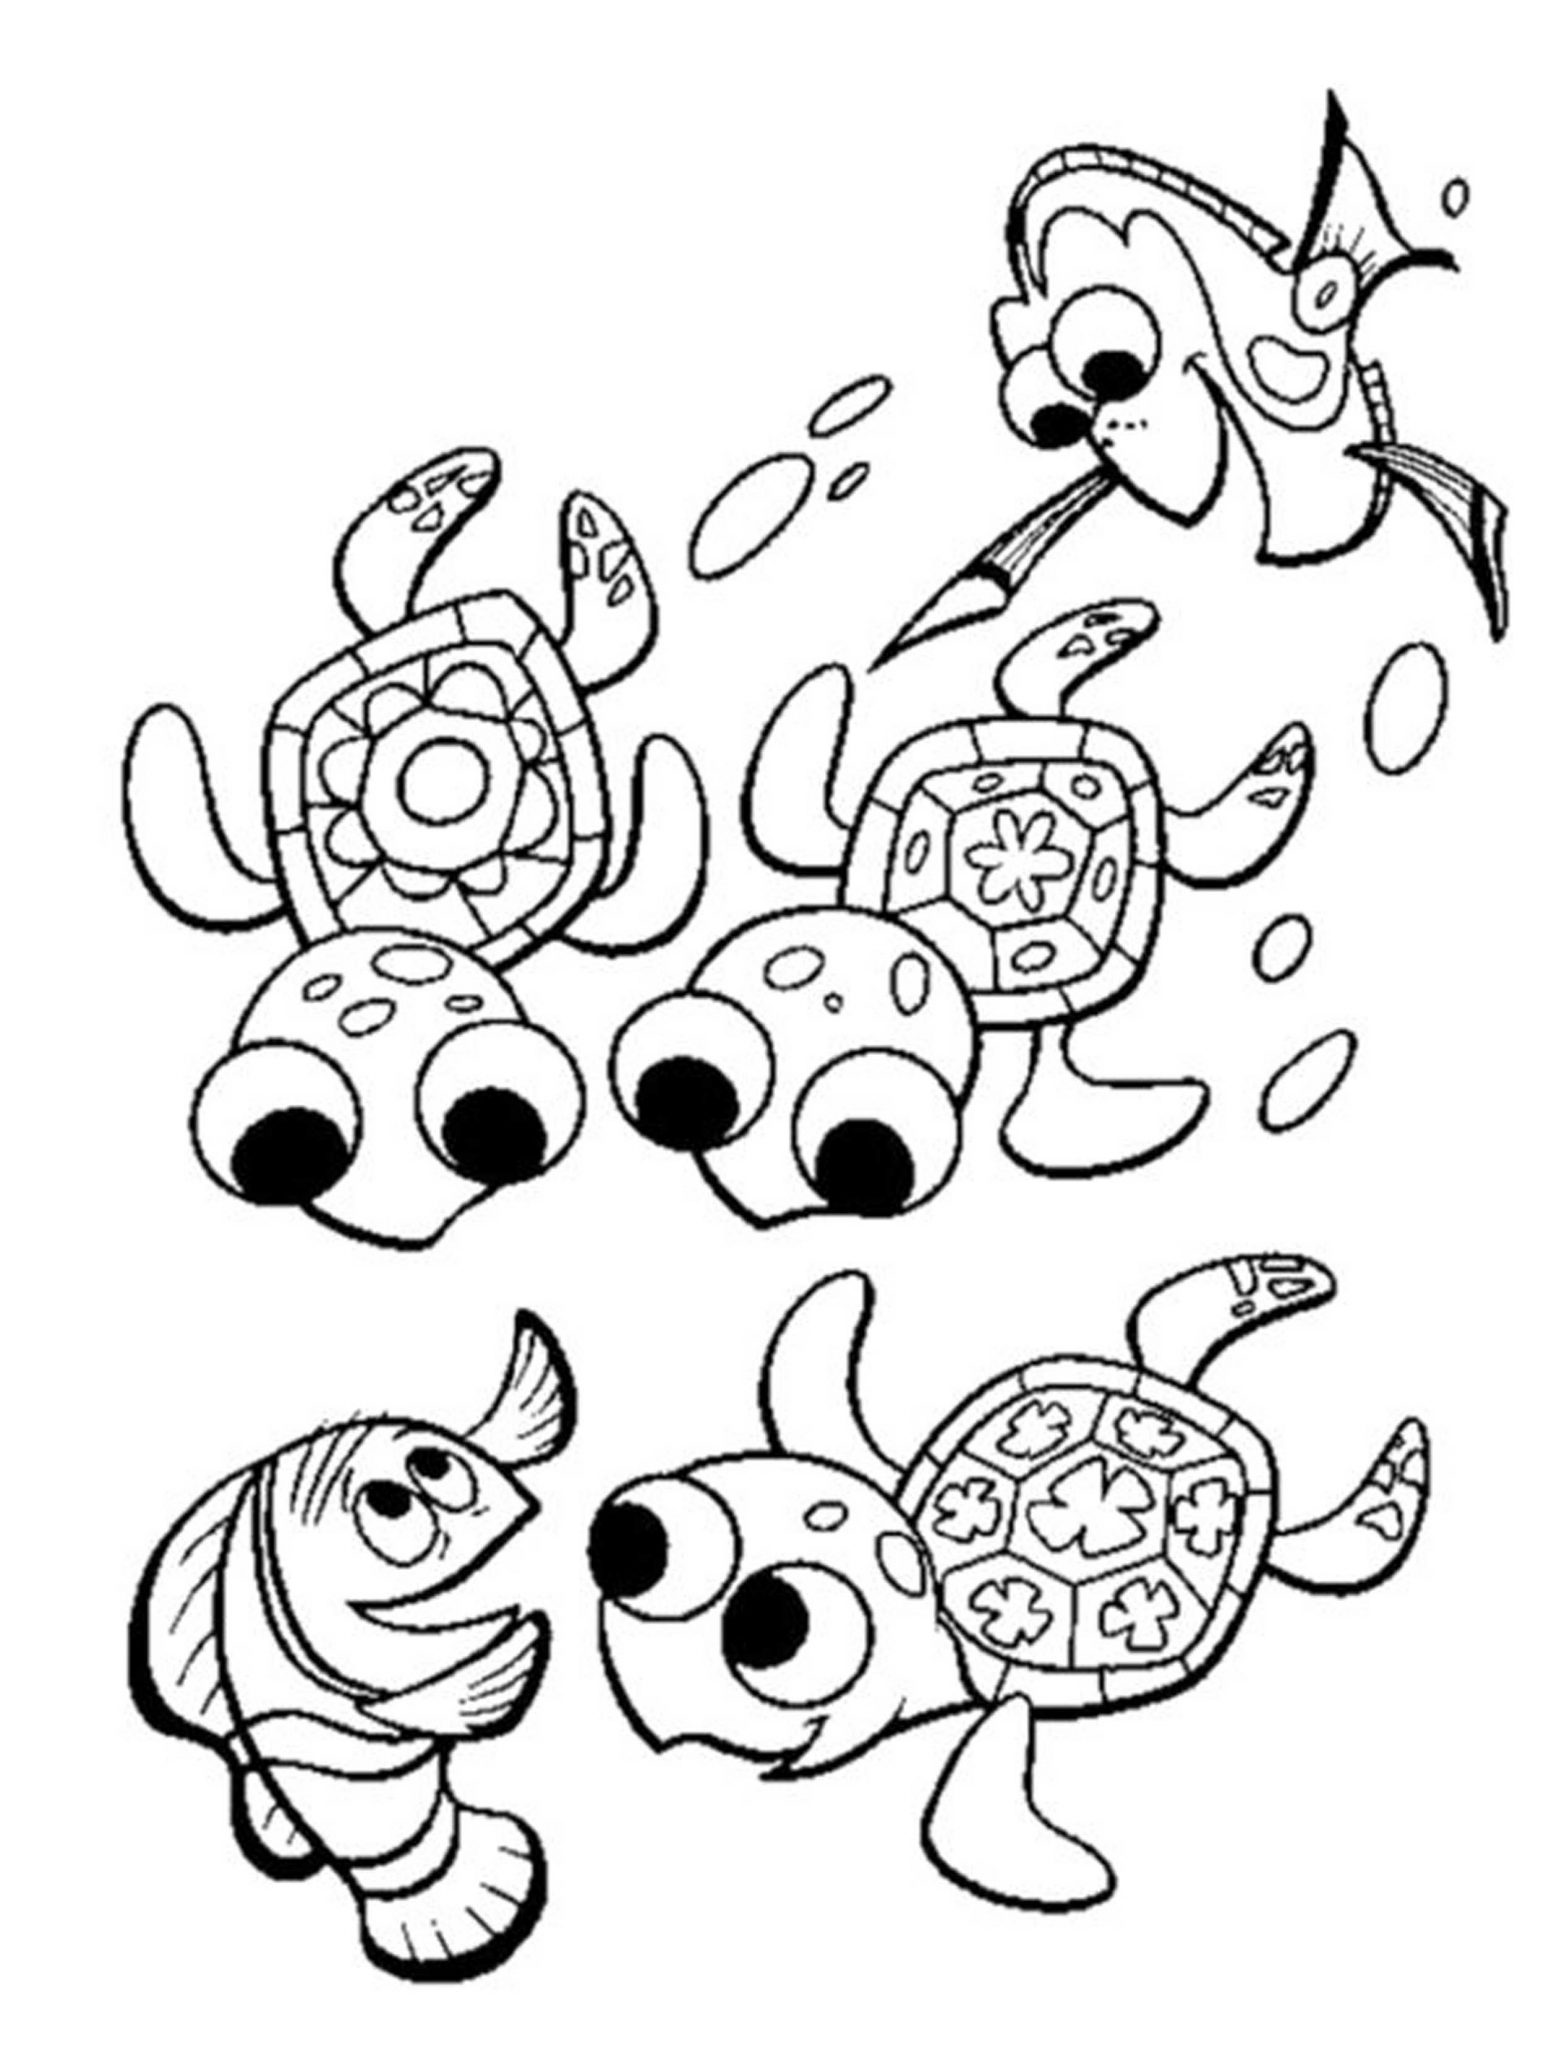 turtle coloring pictures free printable turtle coloring pages for kids pictures coloring turtle